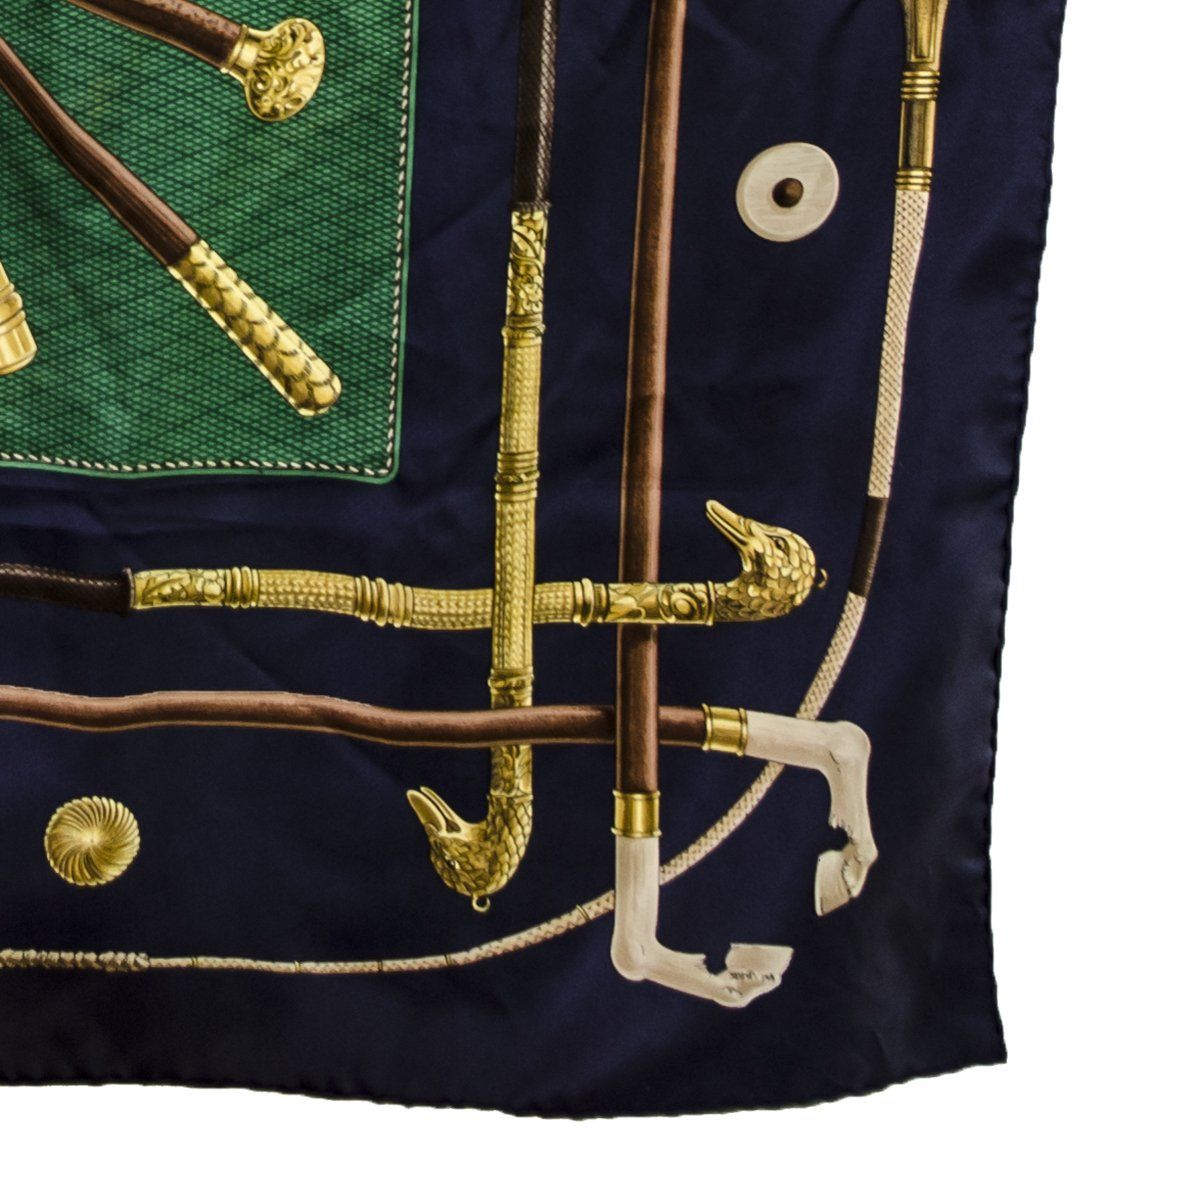 Vintage Hermes Silk Scarf 5, Walking Sticks, Cannes et Pommeaux, Françoise De La Perriere, Navy Blue & Green